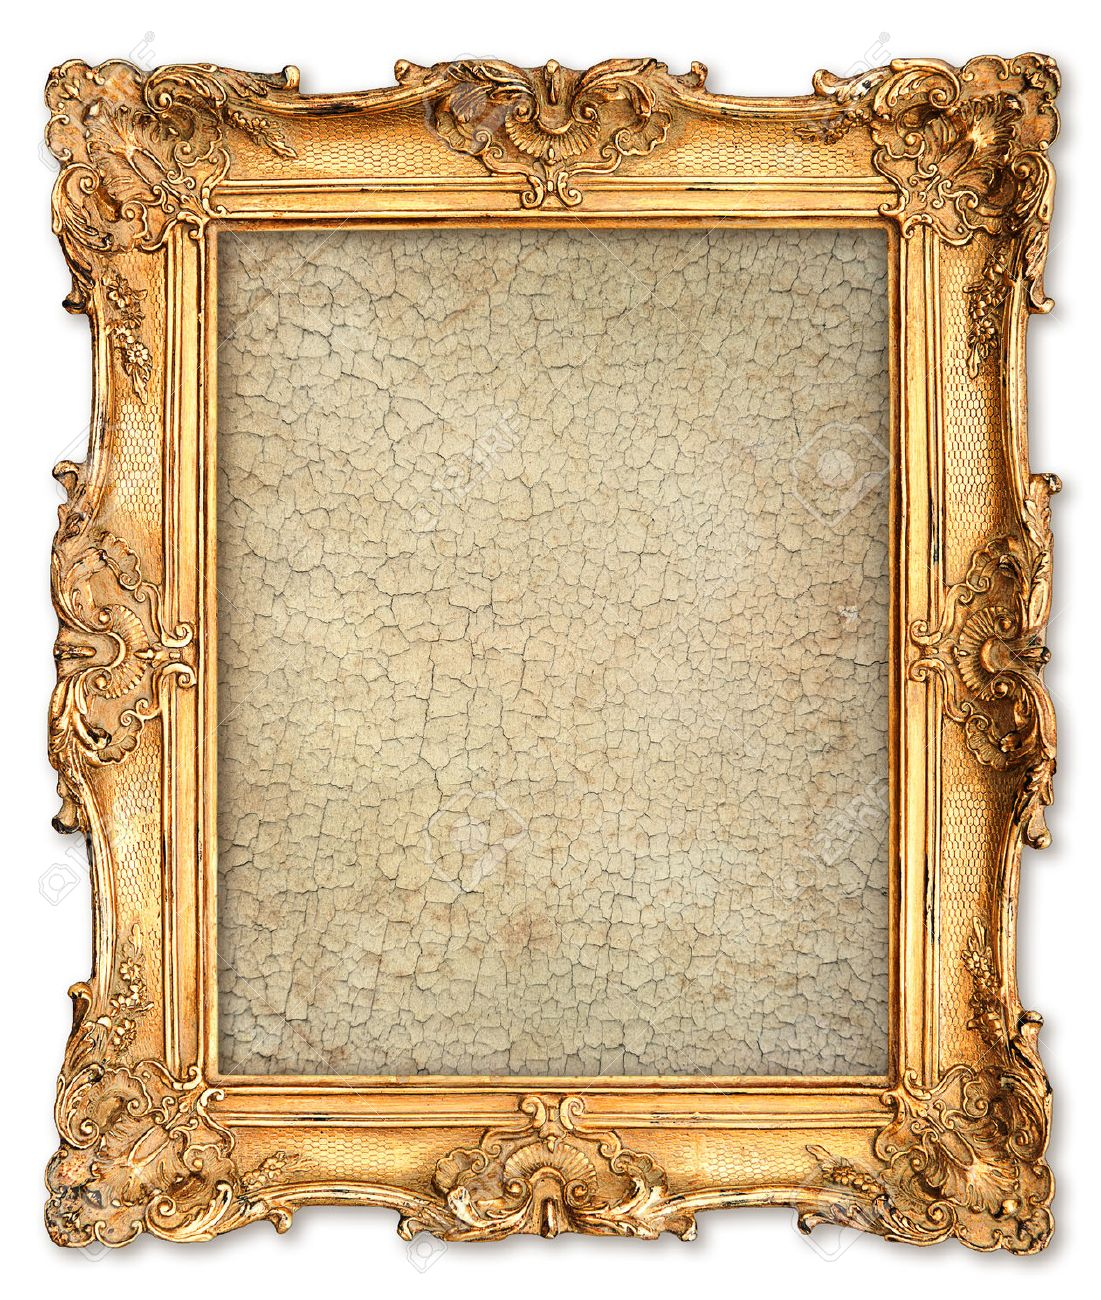 Stock Photo - old golden frame with empty grunge cracked canvas for your  picture, photo, image beautiful vintage background